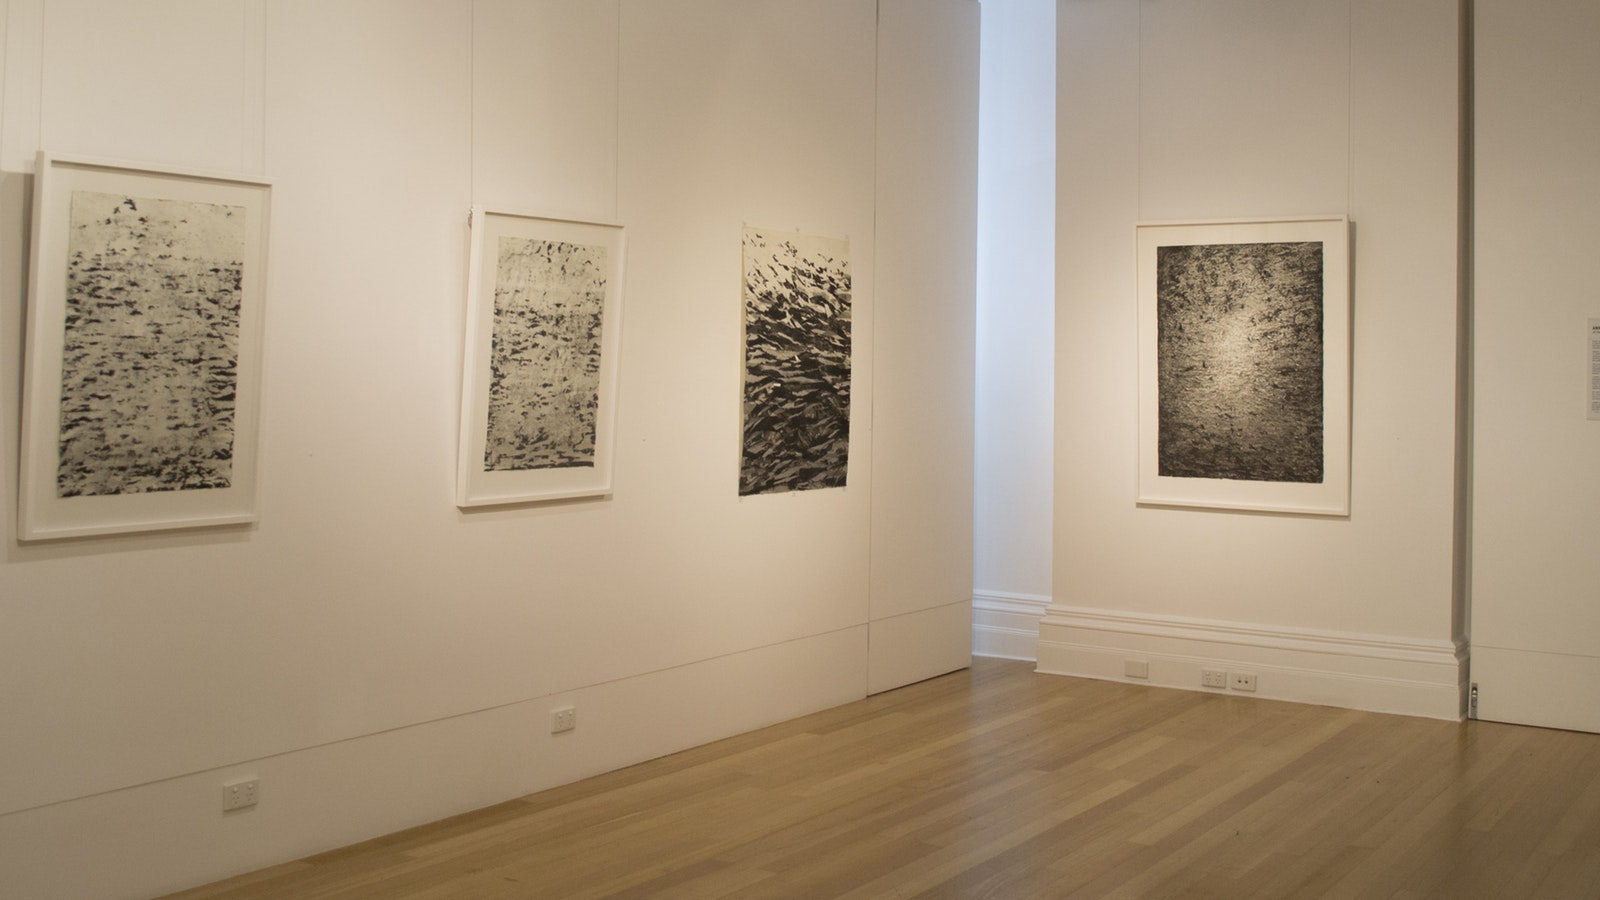 Installation view featuring works by Anne Judell